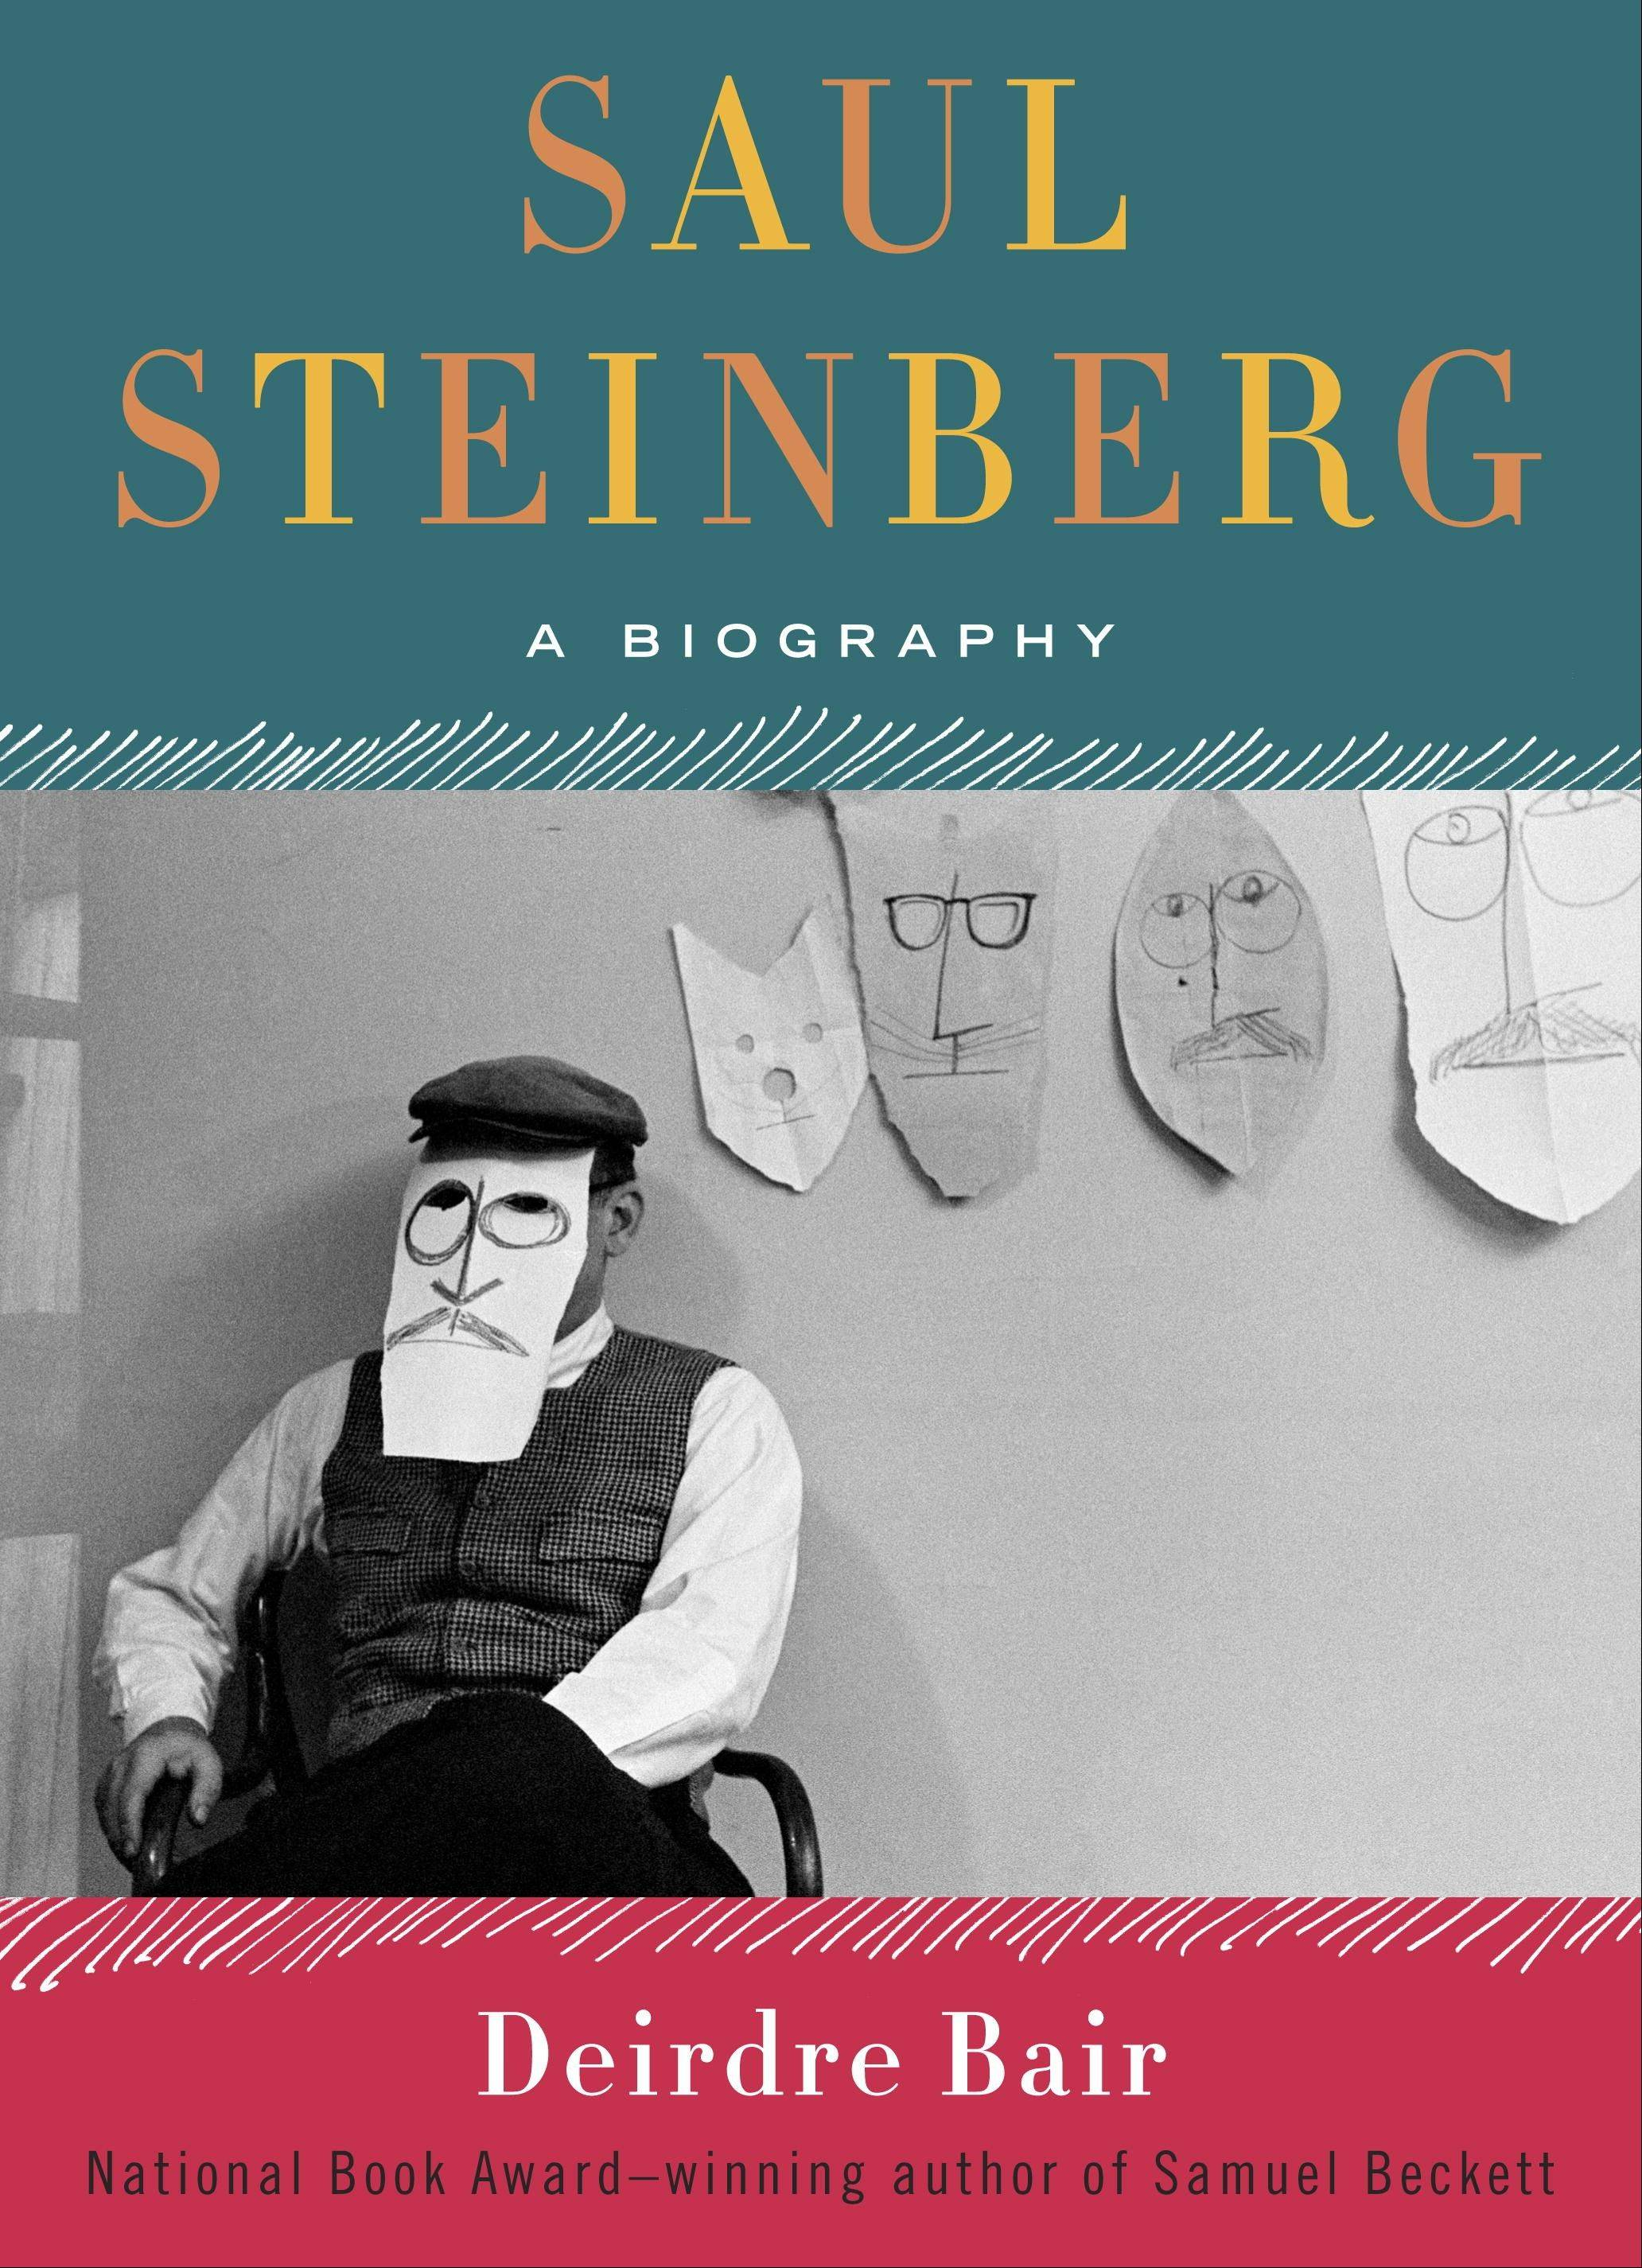 �Saul Steinberg: A Biography� by Deirdre Bair